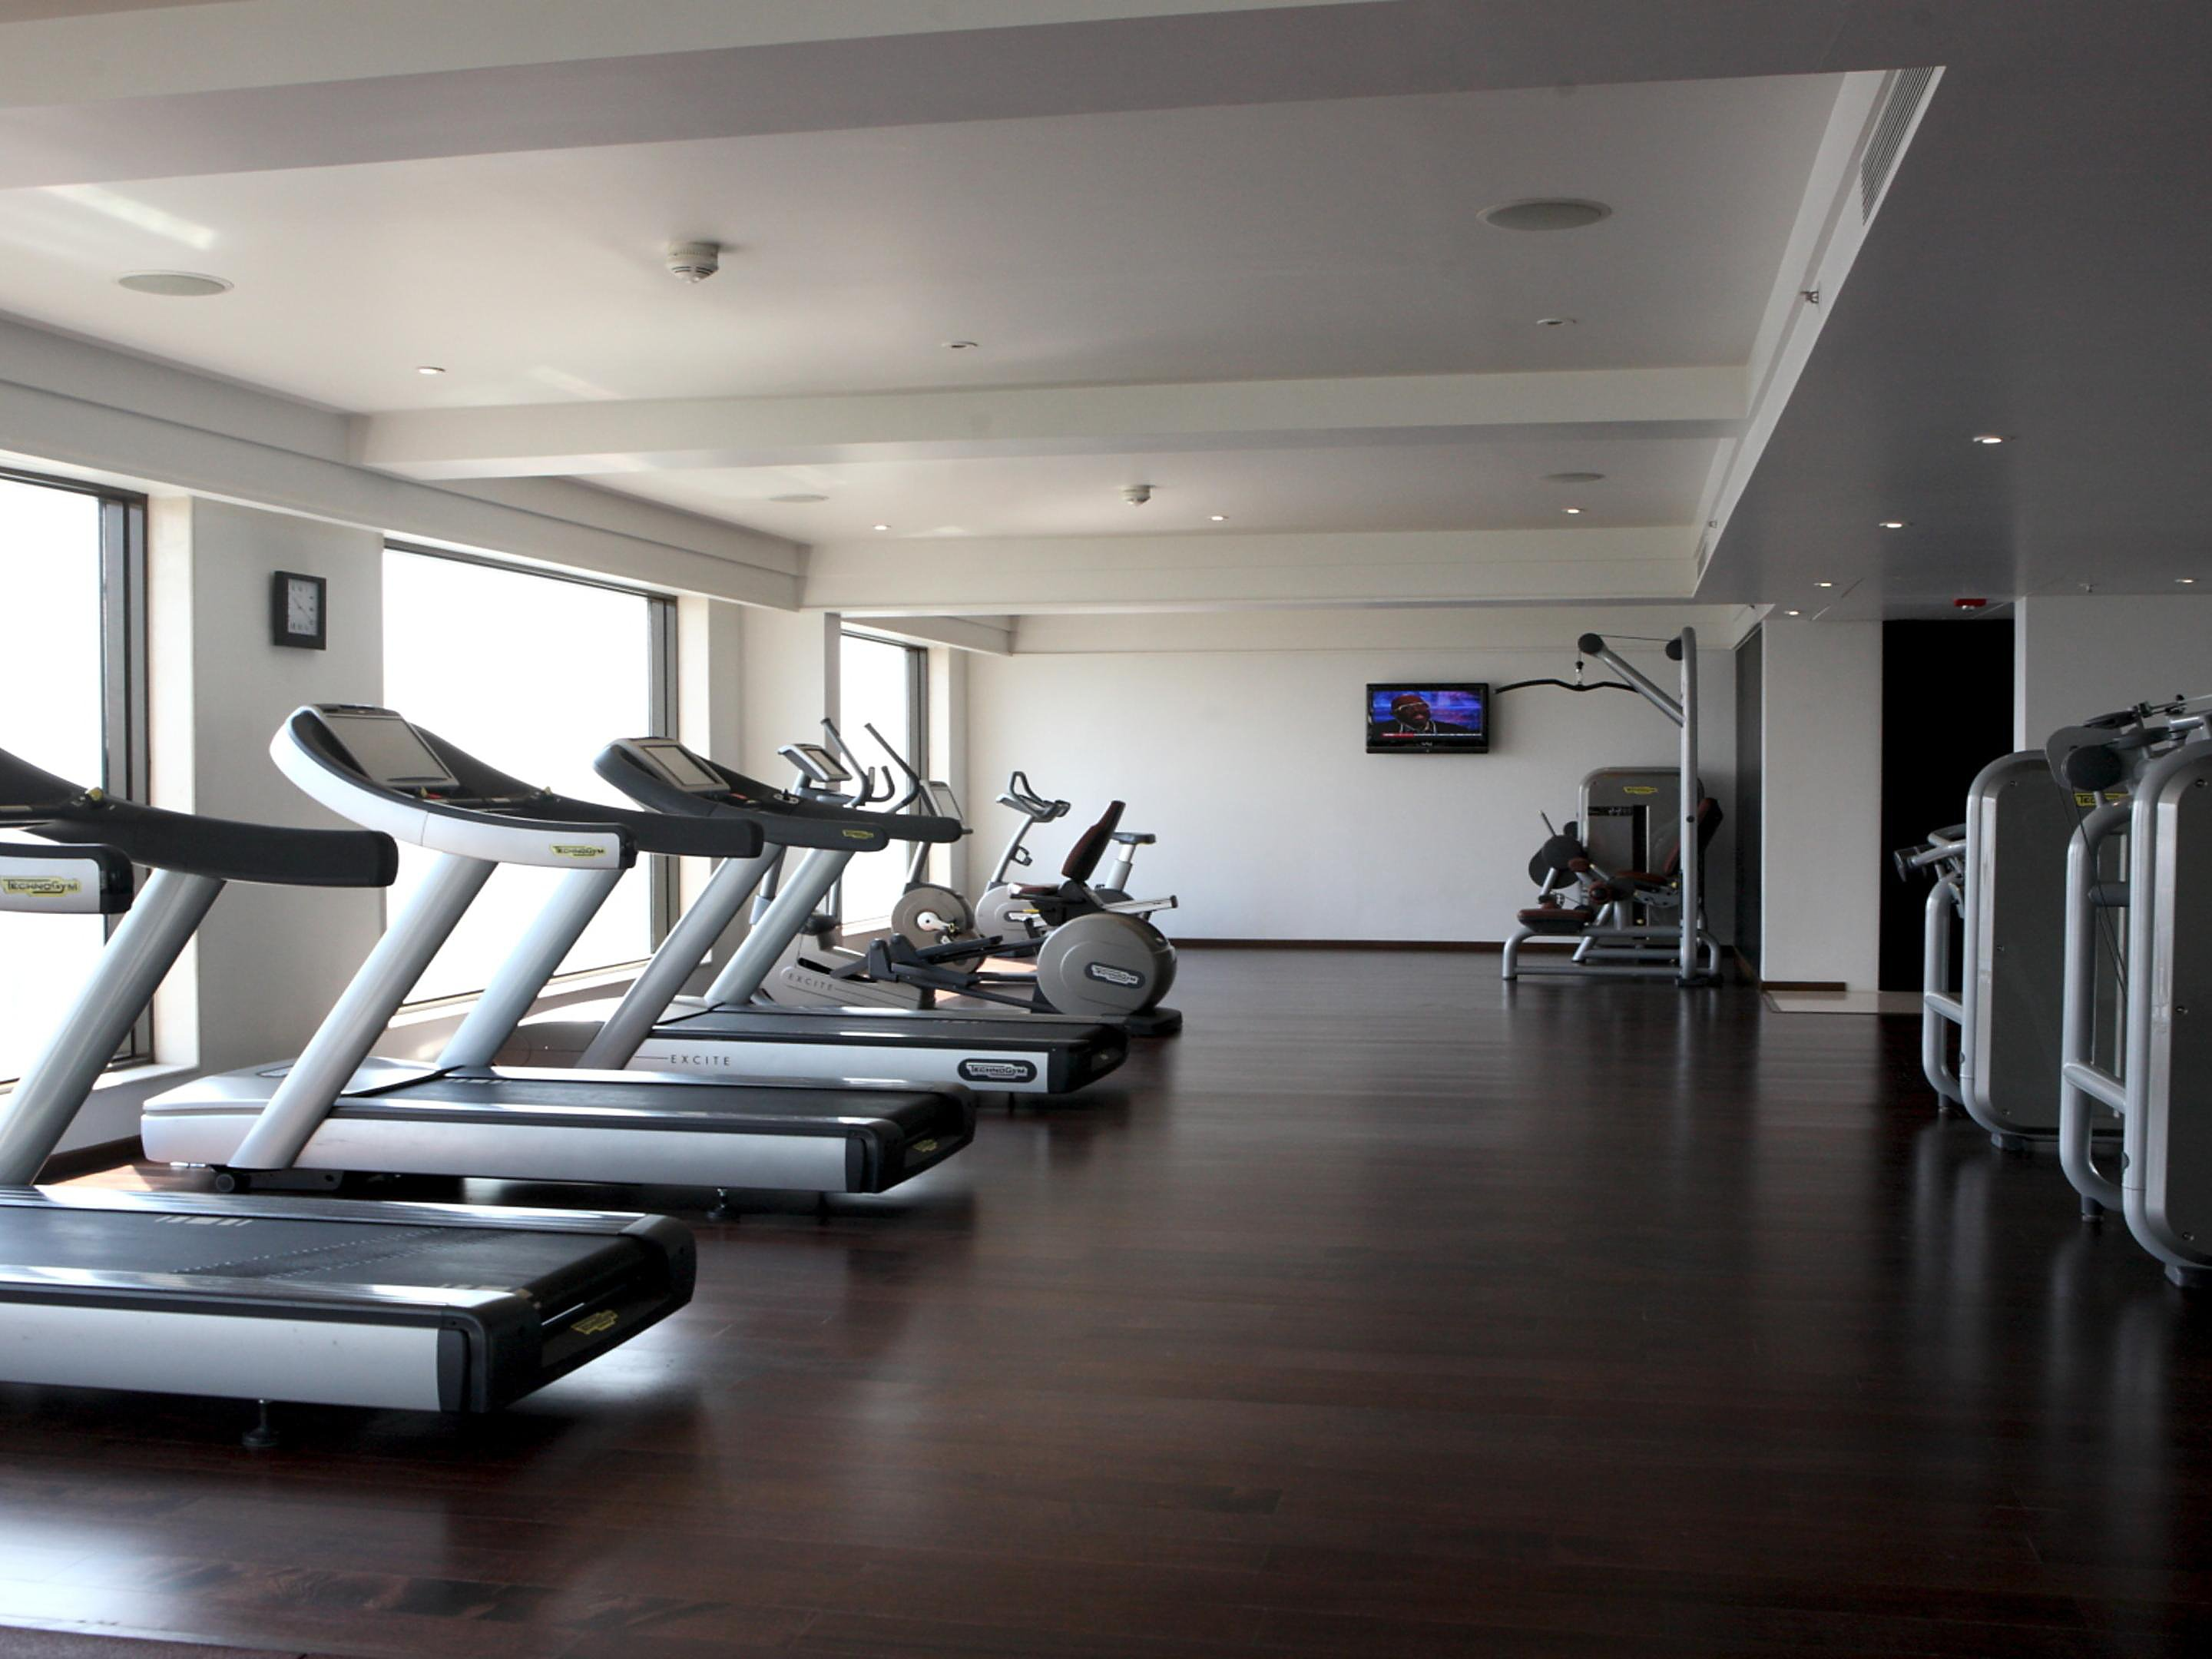 Crowne plaza pune city centre health and fitness facilities